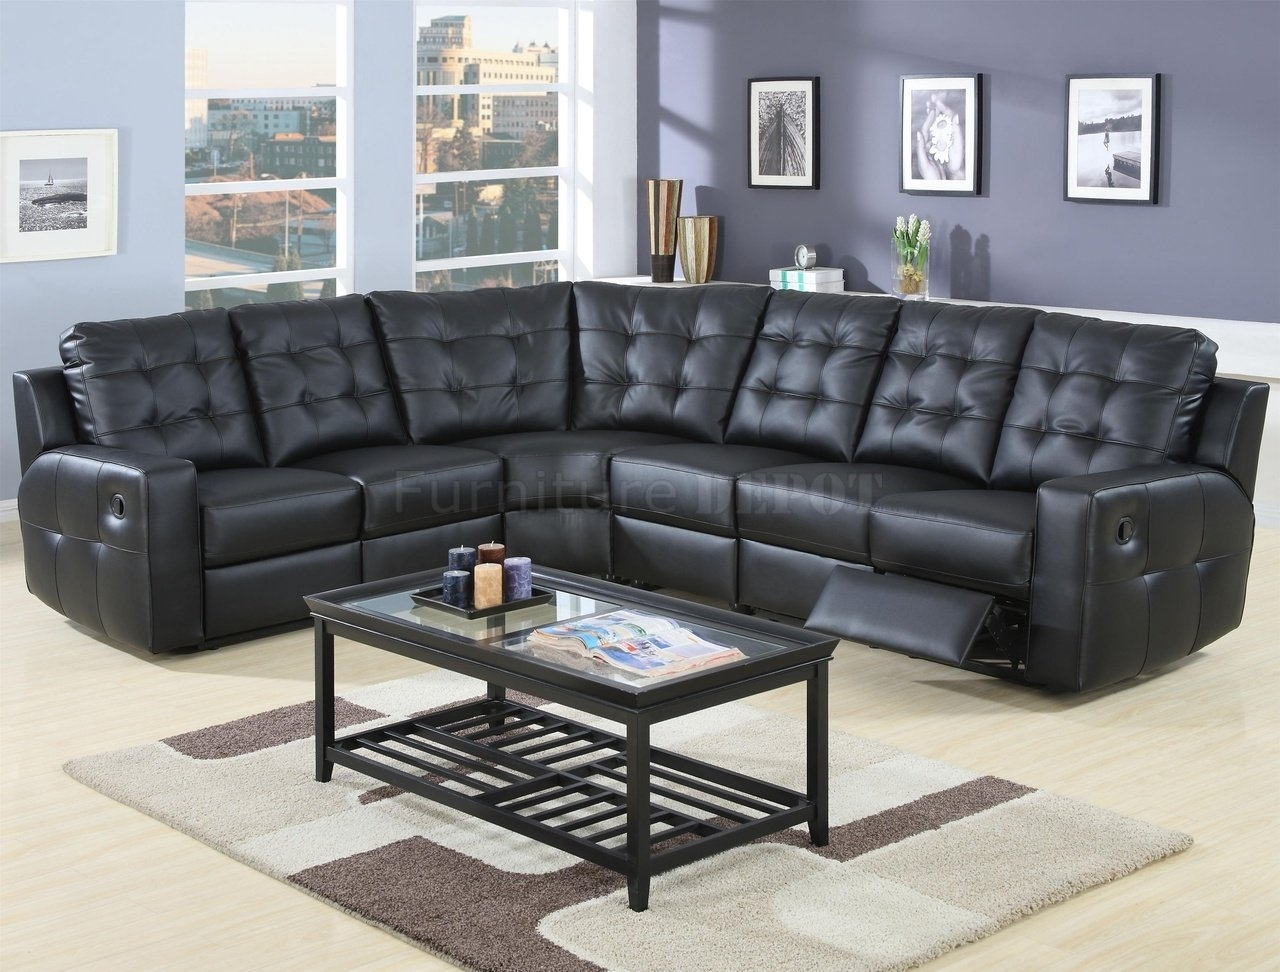 The Most Popular Sectional Sofas Austin Tx 80 On Leather Reclining Pertaining To Austin Sectional Sofas (Image 10 of 10)